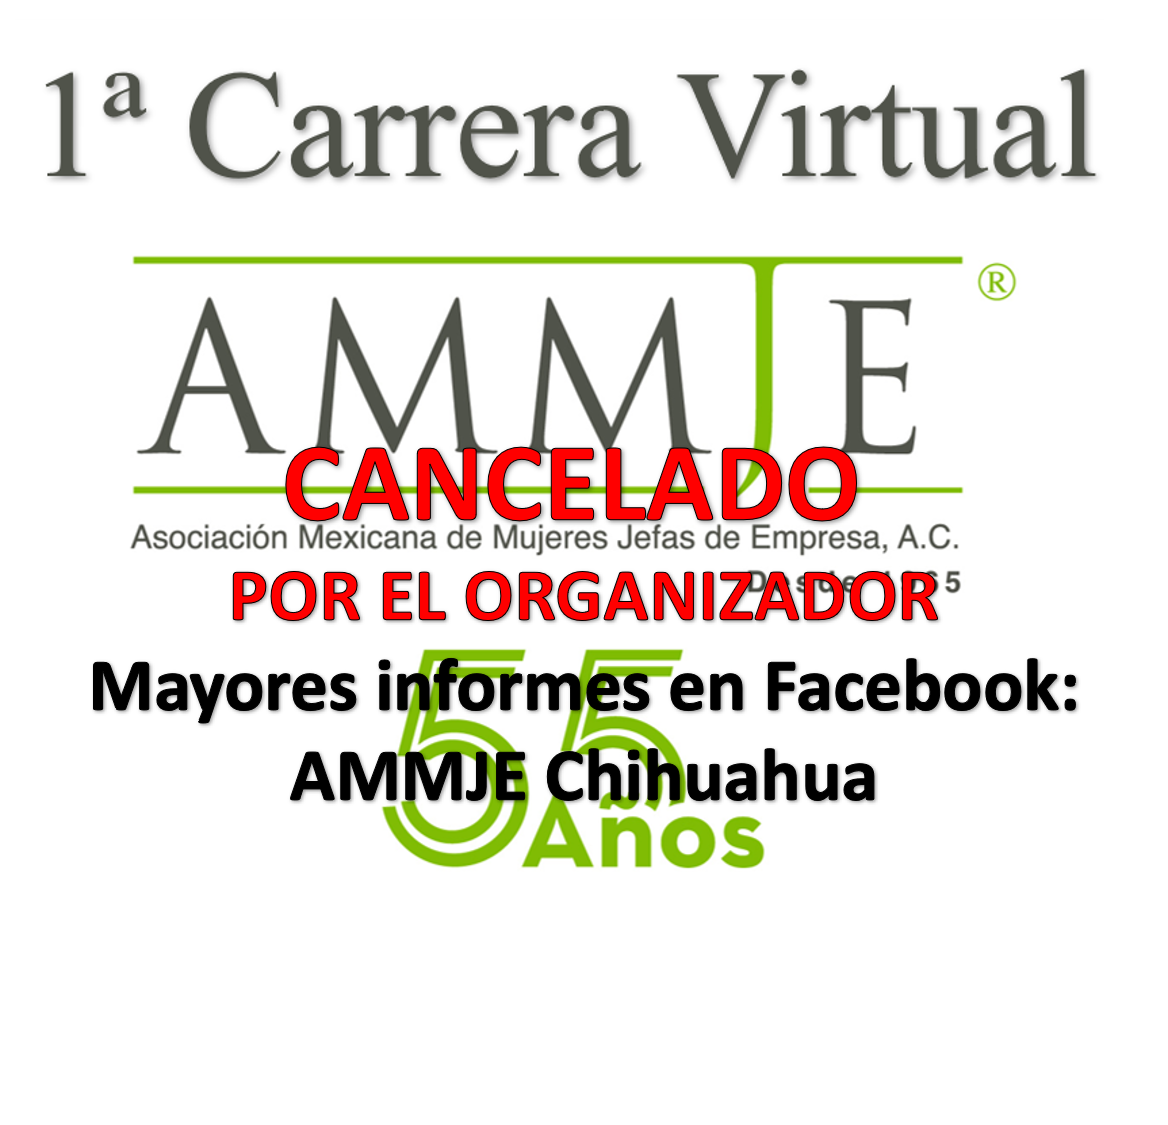 1a CARRERA VIRTUAL AMMJE